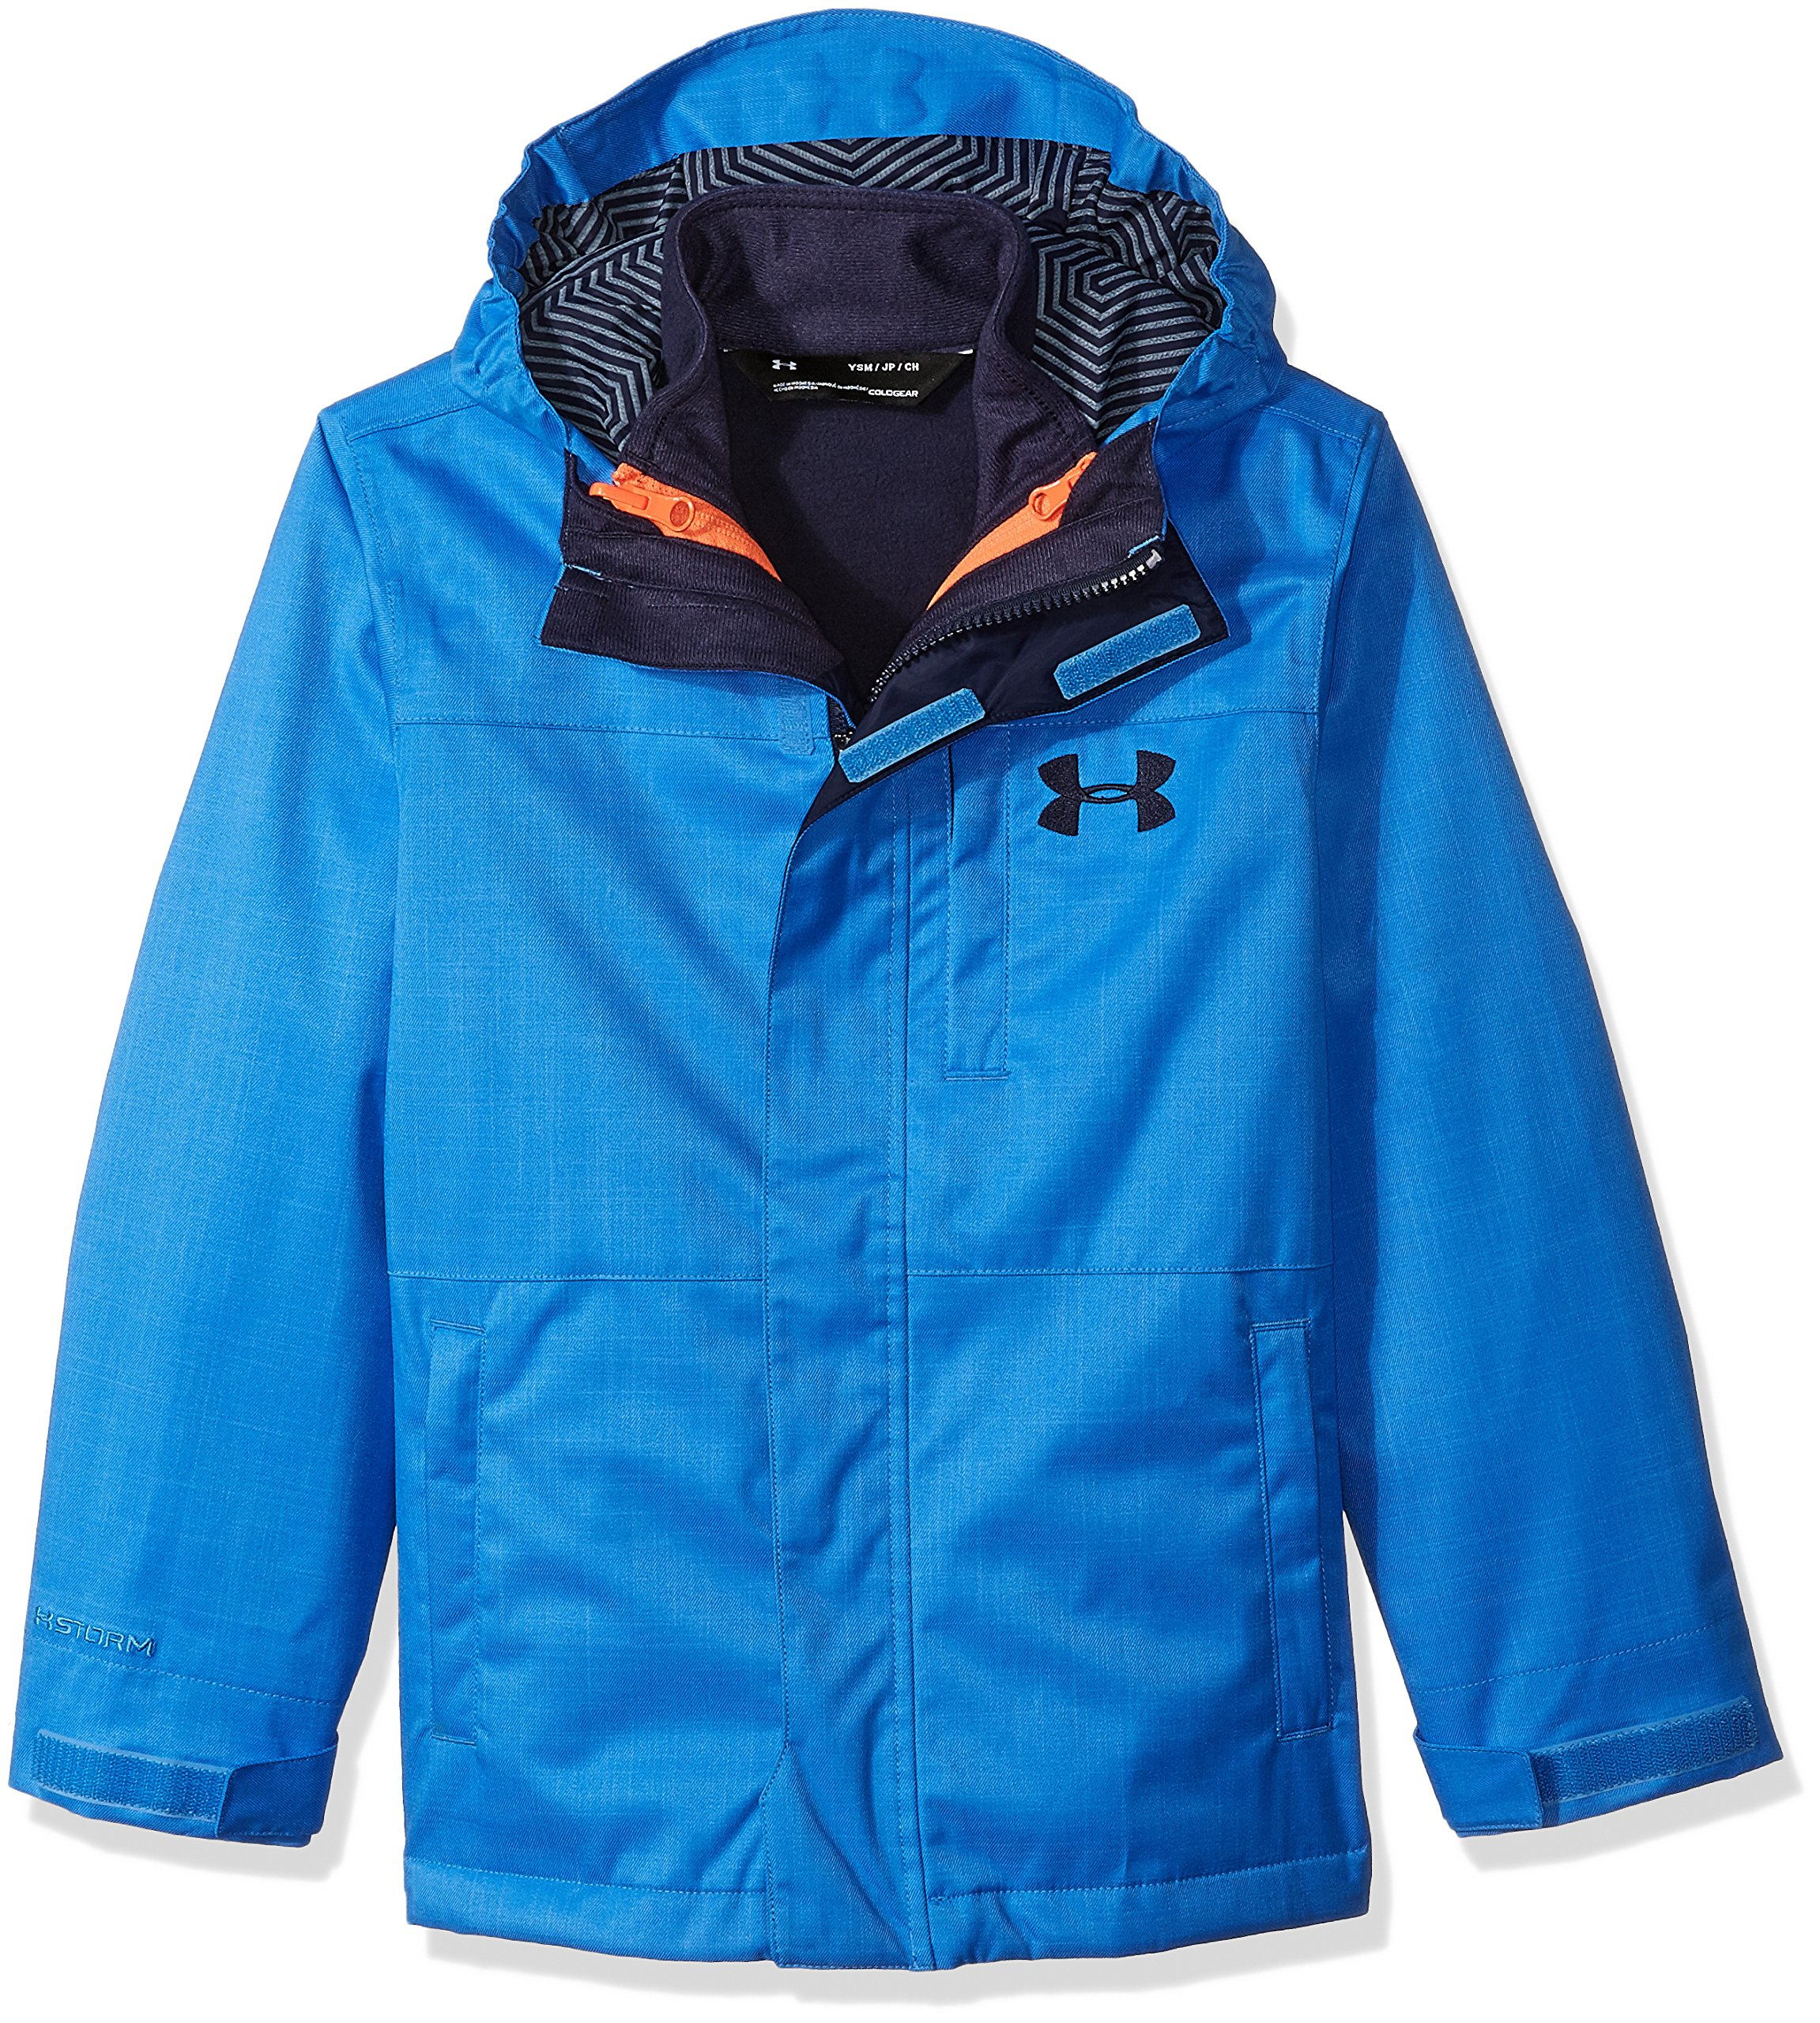 Under Armour Outerwear Boys' UA CGI Wildwood 3-in-1 (Big Kids), Mako Blue (983)/Midnight Navy, Youth Large